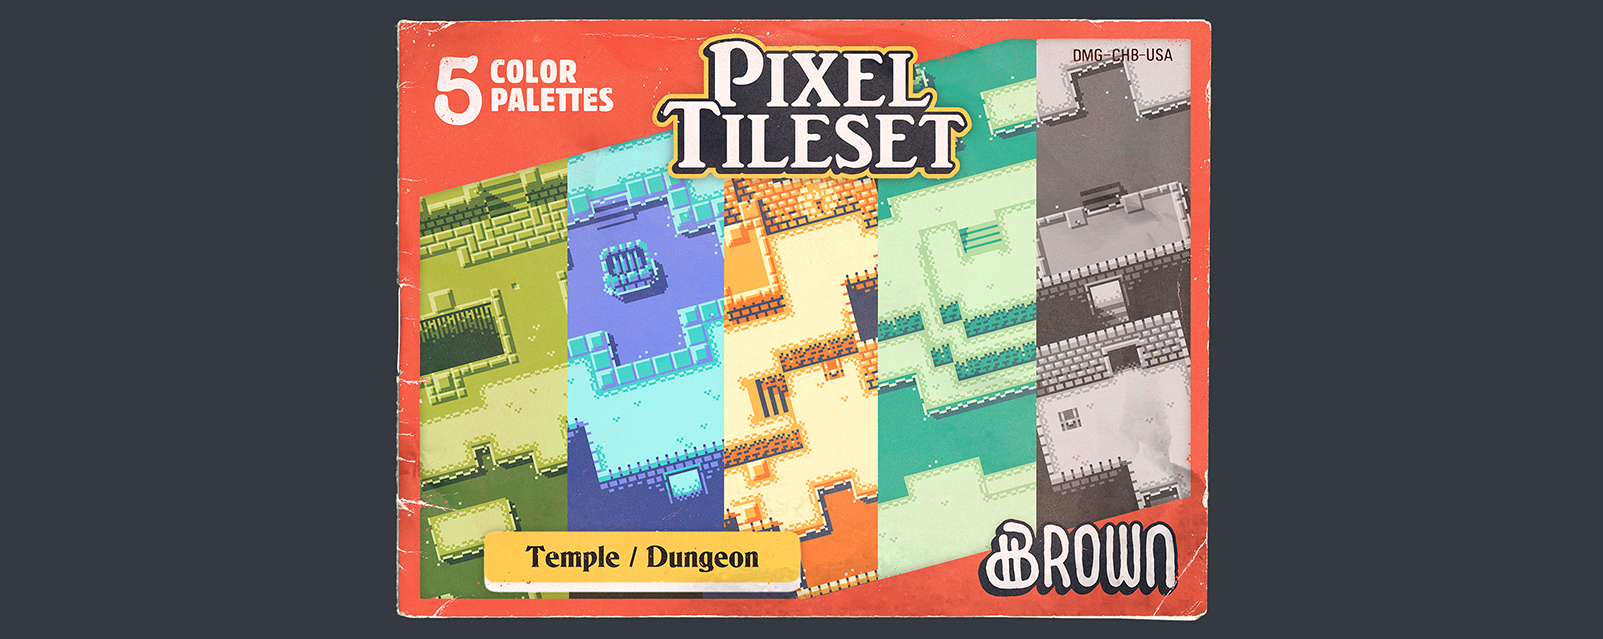 Pixel Tileset: Temple / Dungeon